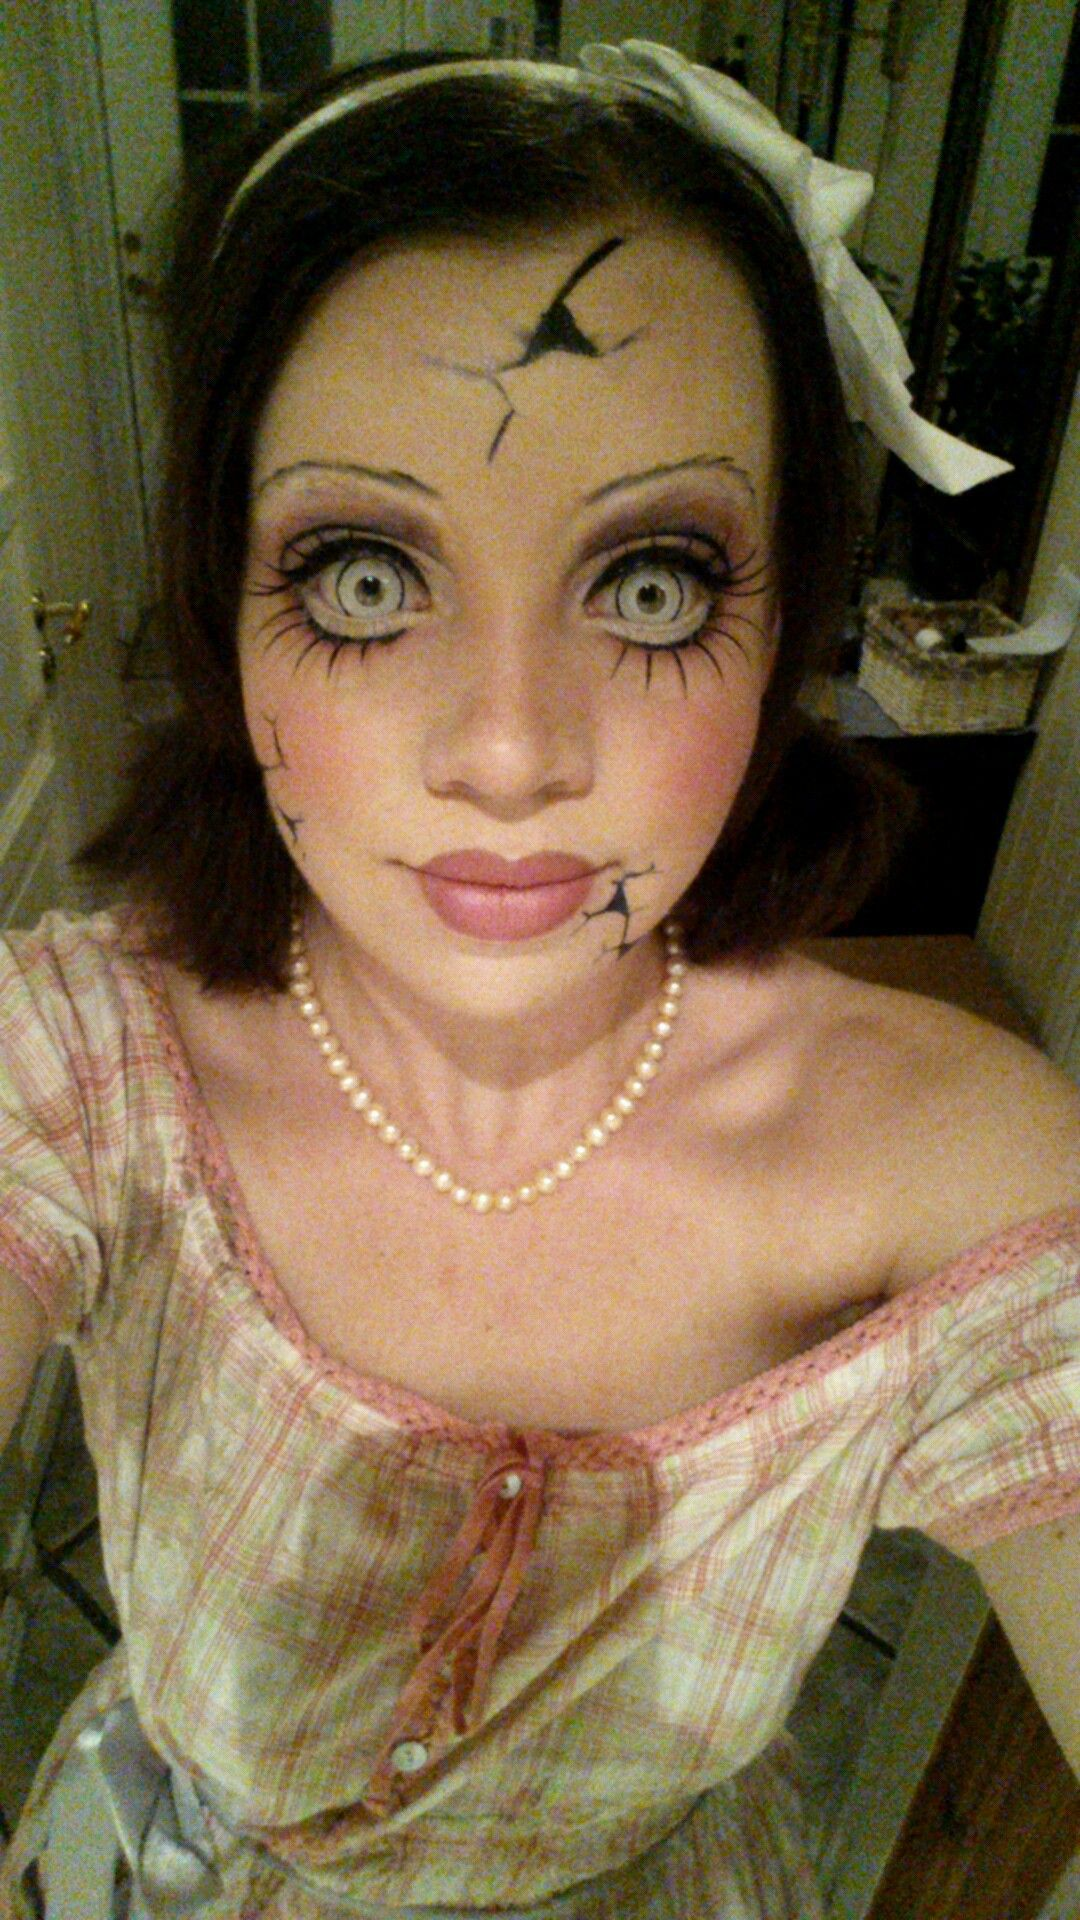 creepy doll (makeup and costume) | cosplay and costumes | pinterest